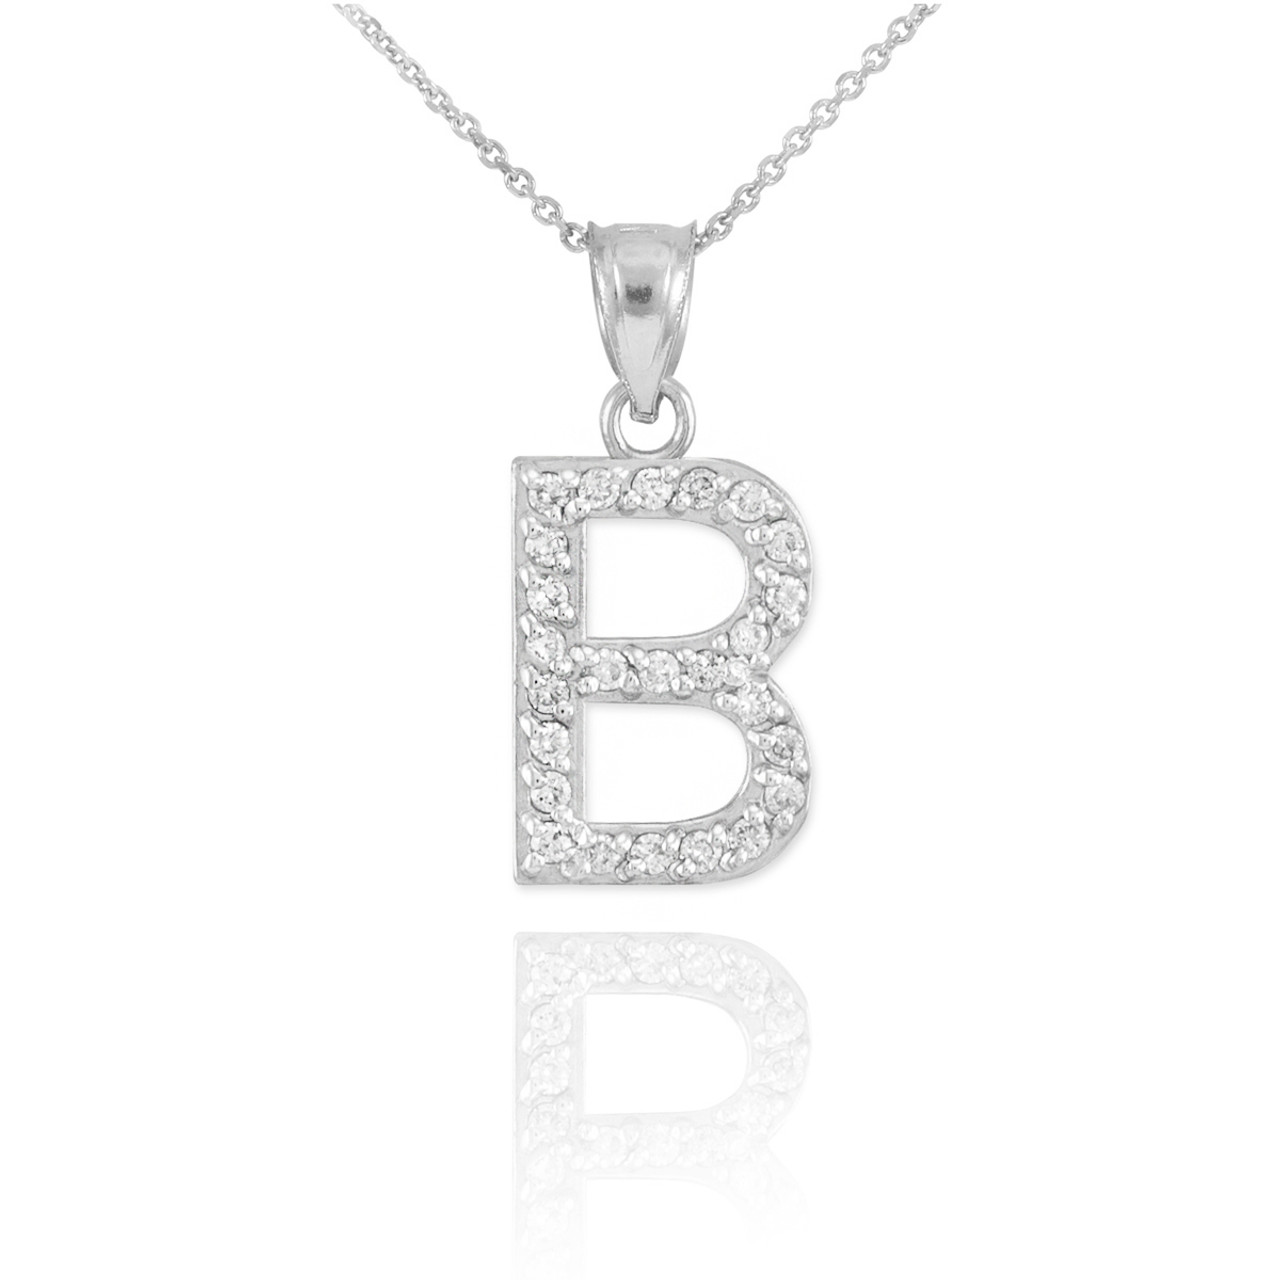 co asli aetherair mini alphabet m necklace gothic letter pendant